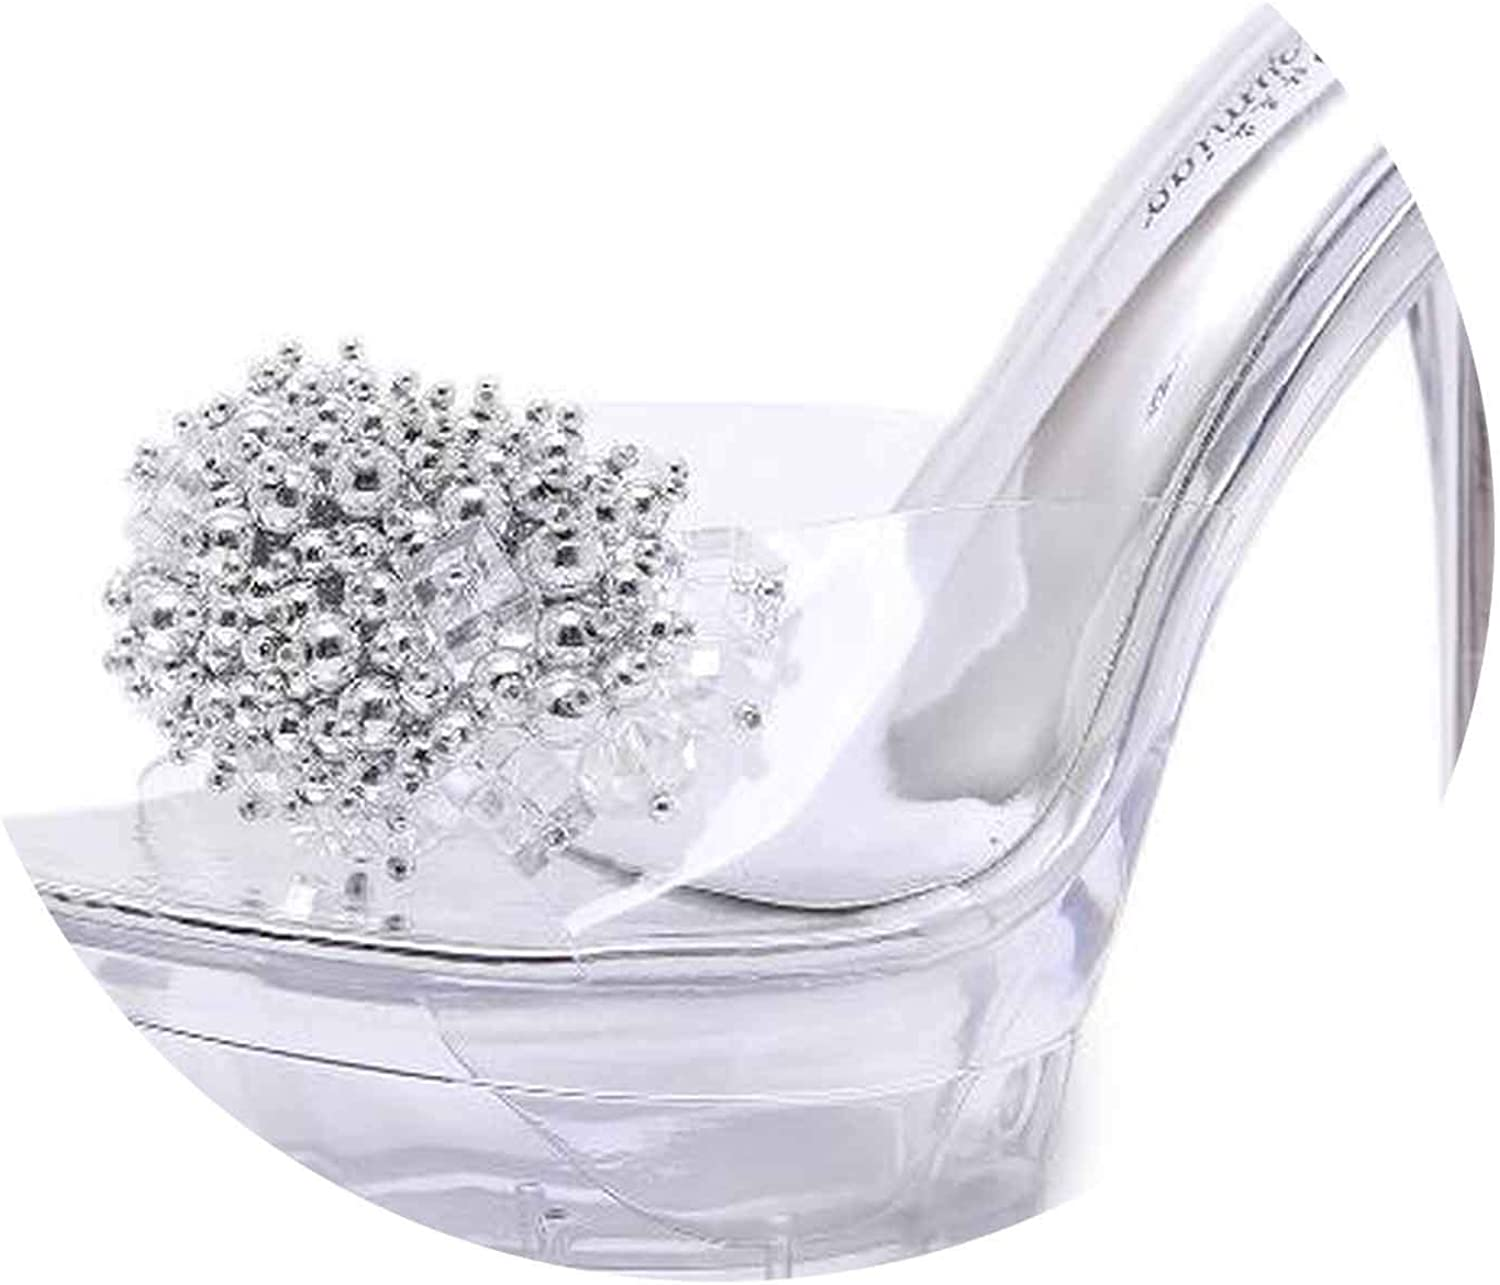 Surprisedresshatglasses-slippers Slope Sandals Crystal Transparent Diamond Wedges Sandals High Heels 8.5cm Slope Sandals